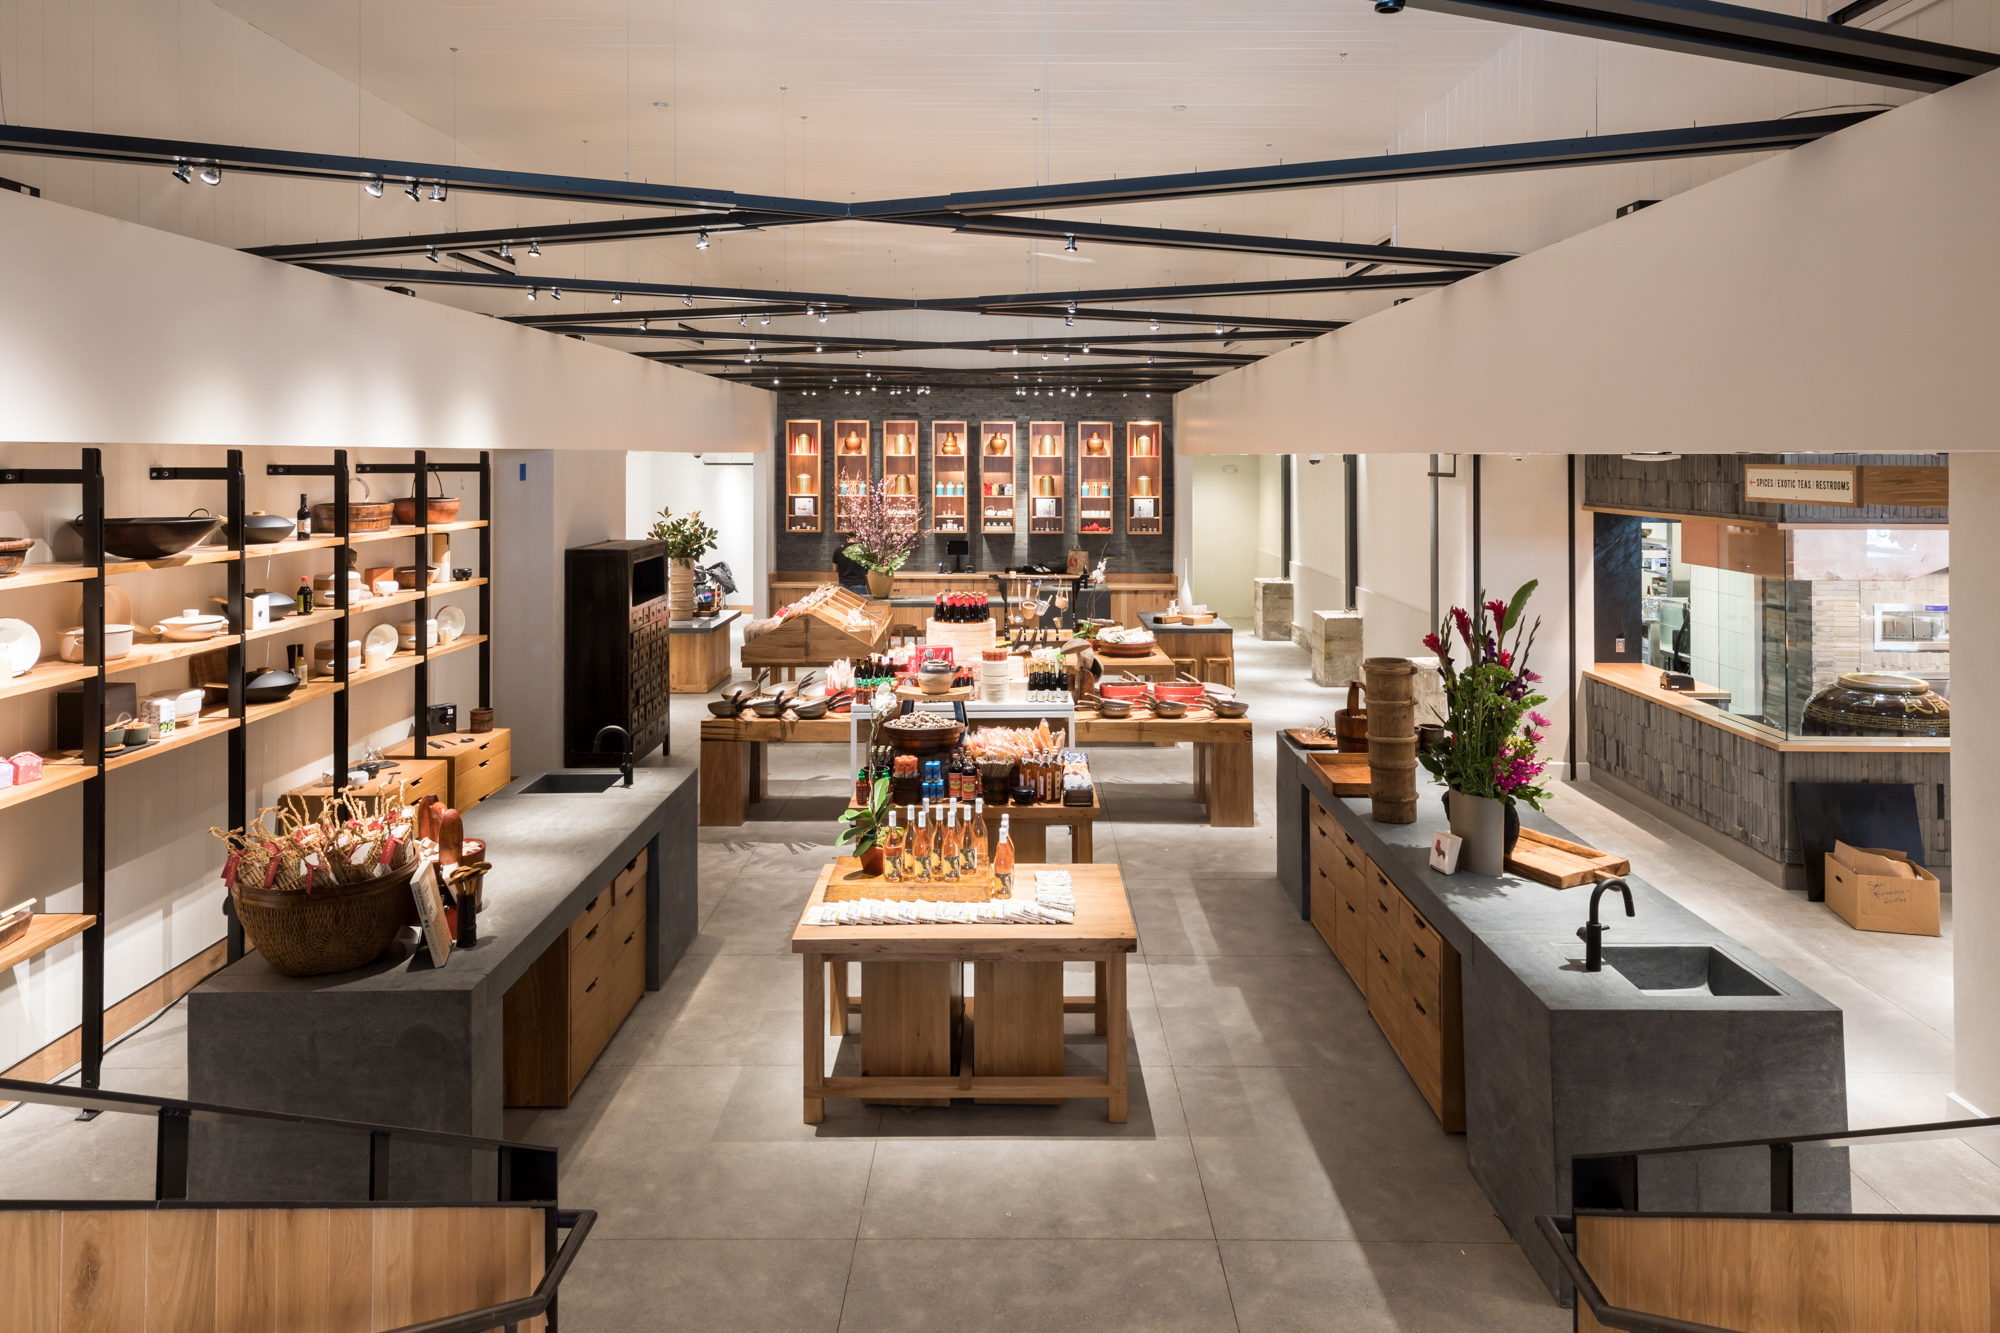 Your Guide To China Live Chinatown S New Emporium Of Food